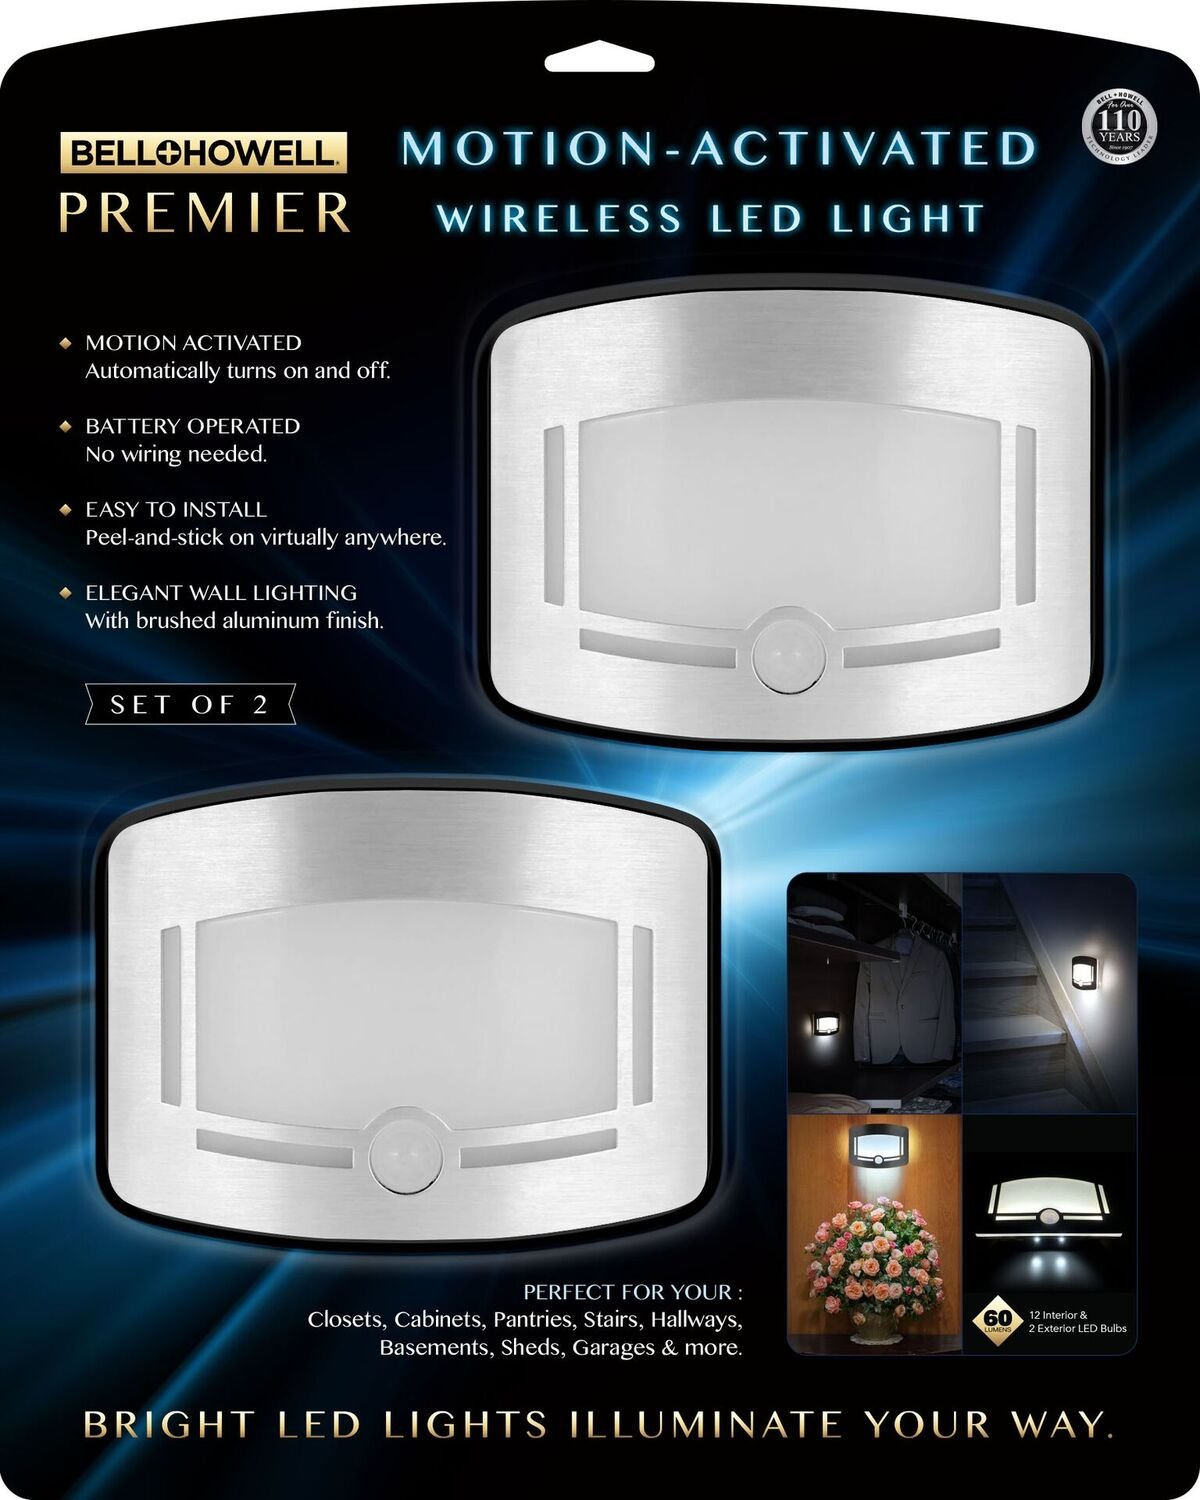 Bell Howell 2090 Premier Motion Activated Wireless Led Light Set Wiring A In Shed Of 2 Stainless Steel